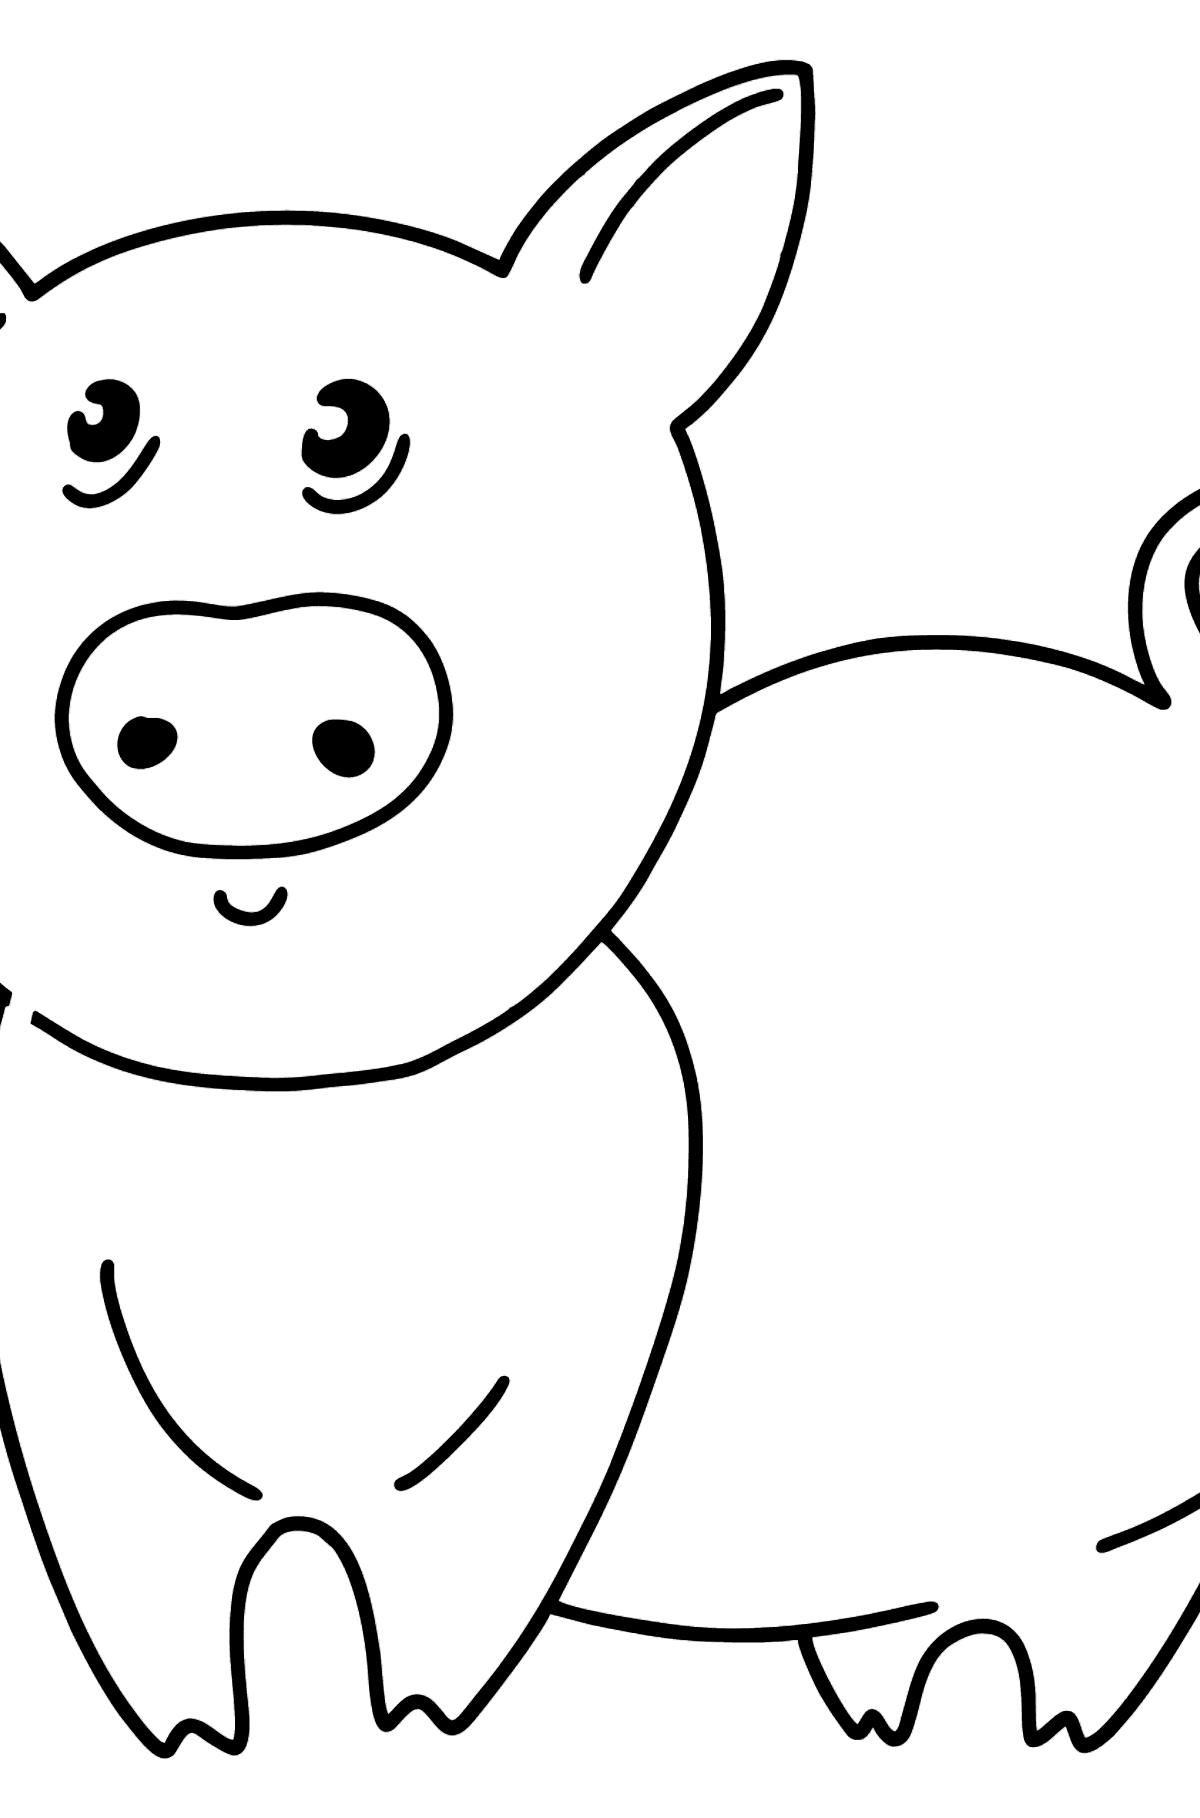 Piglet coloring page - Coloring Pages for Kids